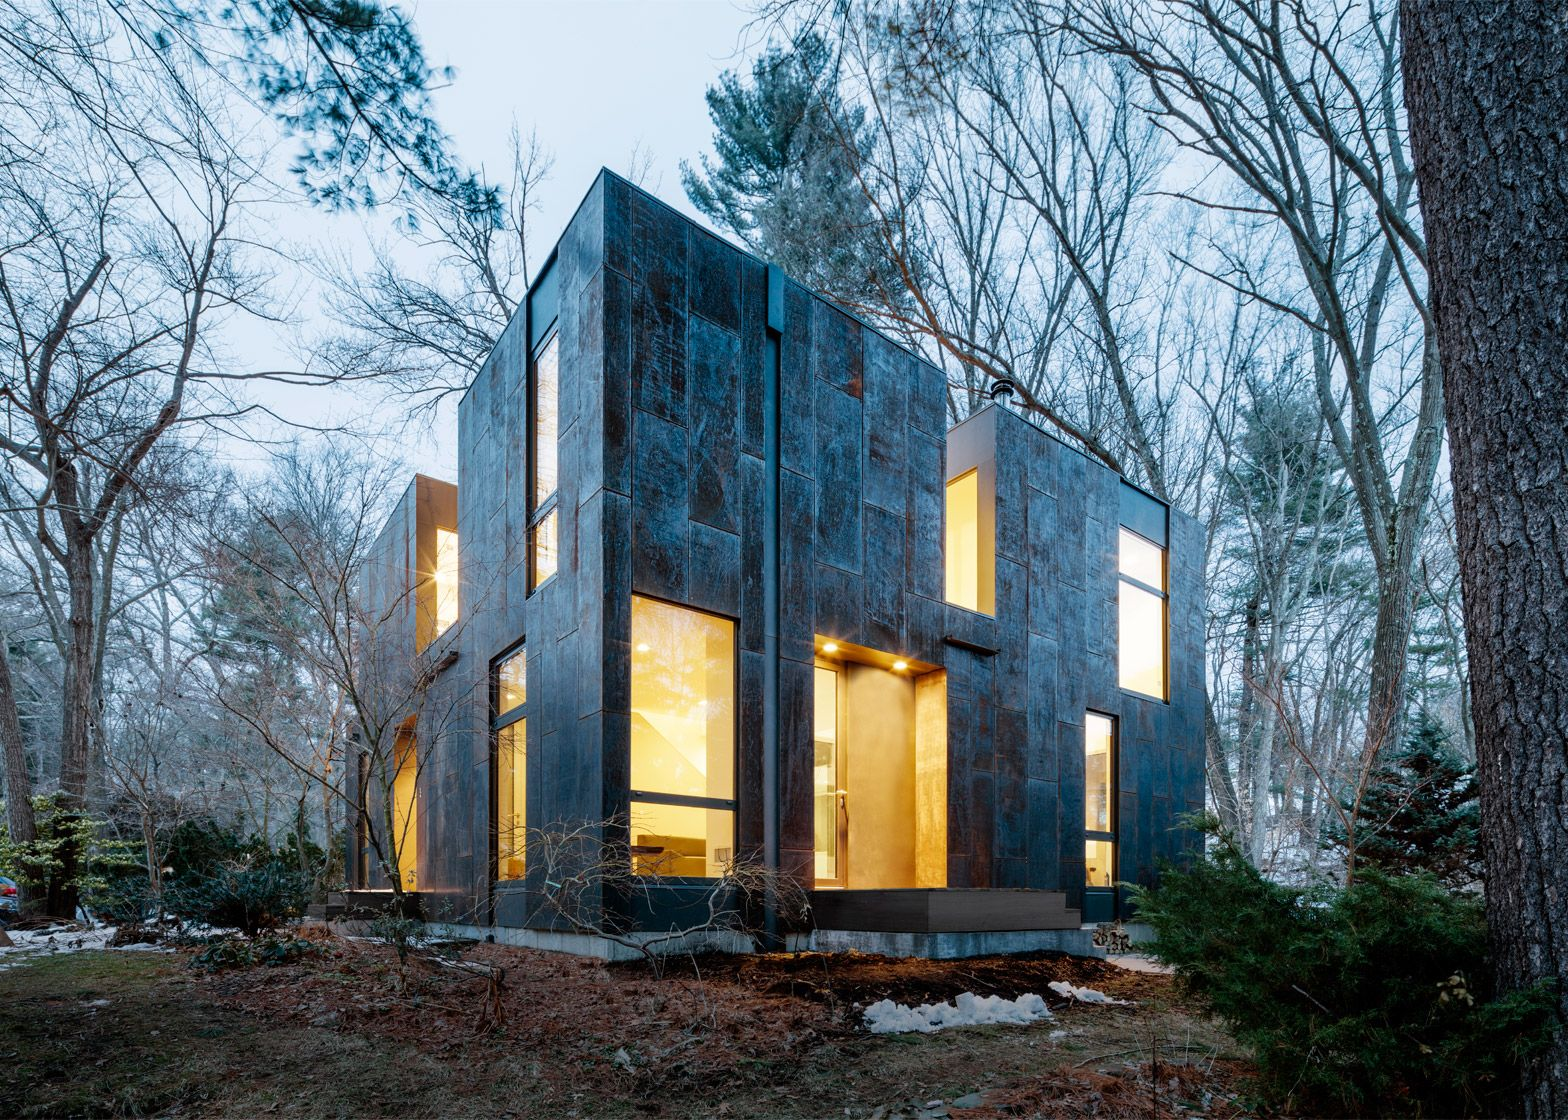 Merge clads compact massachusetts home in weathering steel